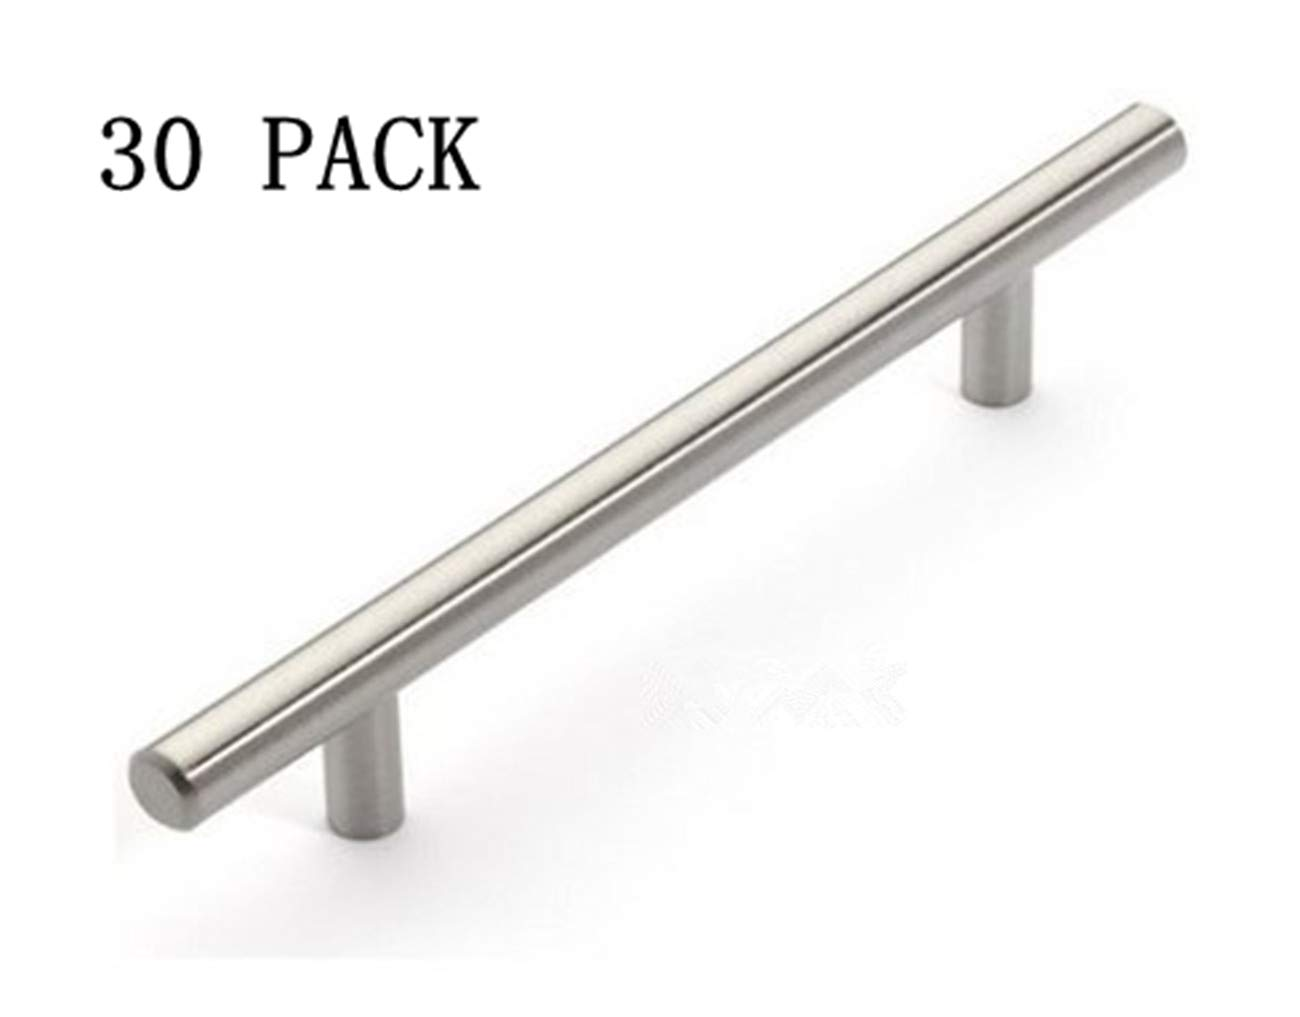 Wang-Data 12mm Stainless Steel Kitchen Cabinet Handles T Bar Pull (12 Inches)